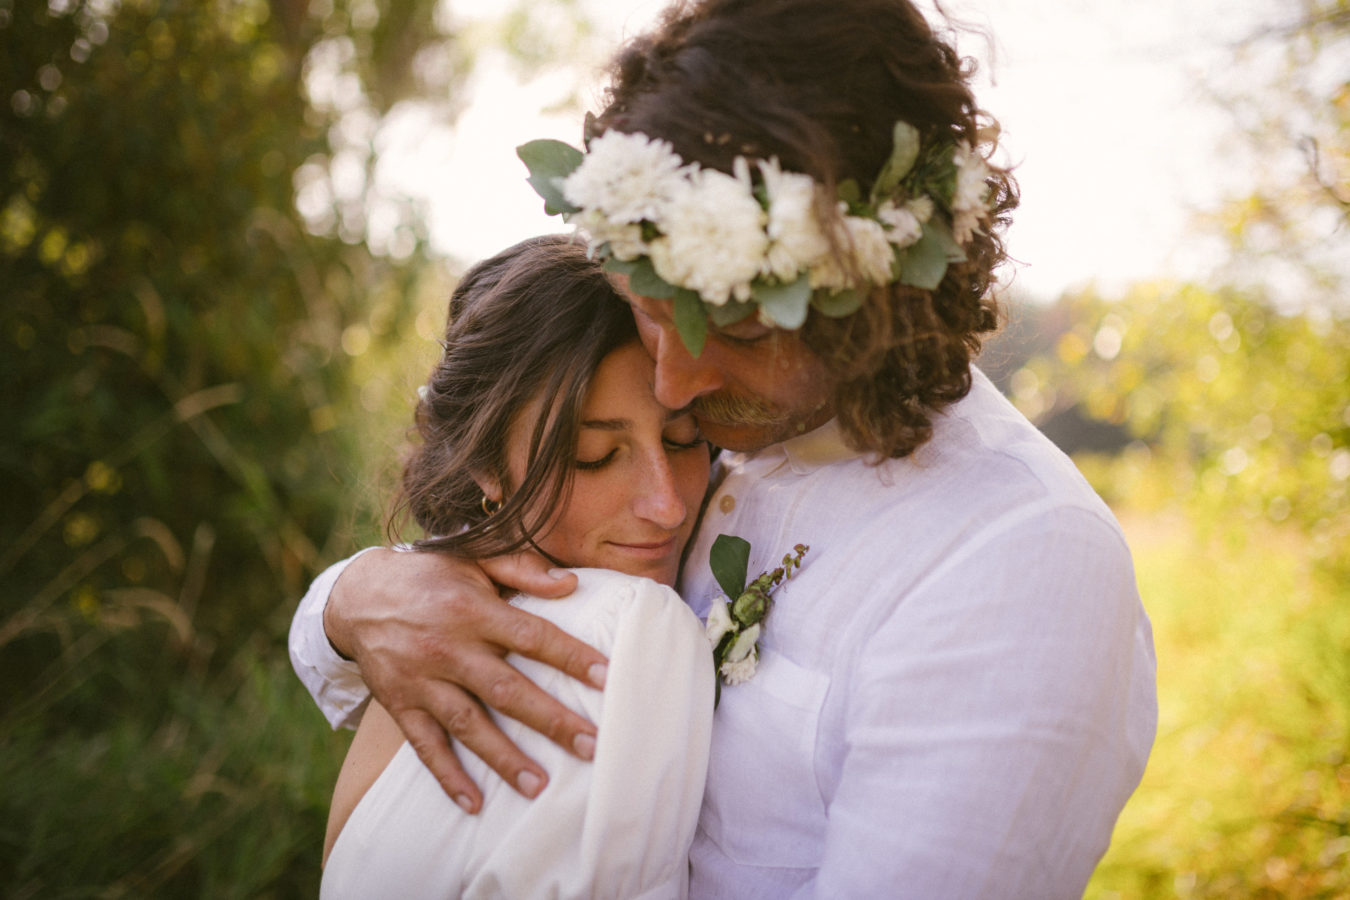 close up of a bride and groom intimately hugging on their wedding day with out of focus trees behind them